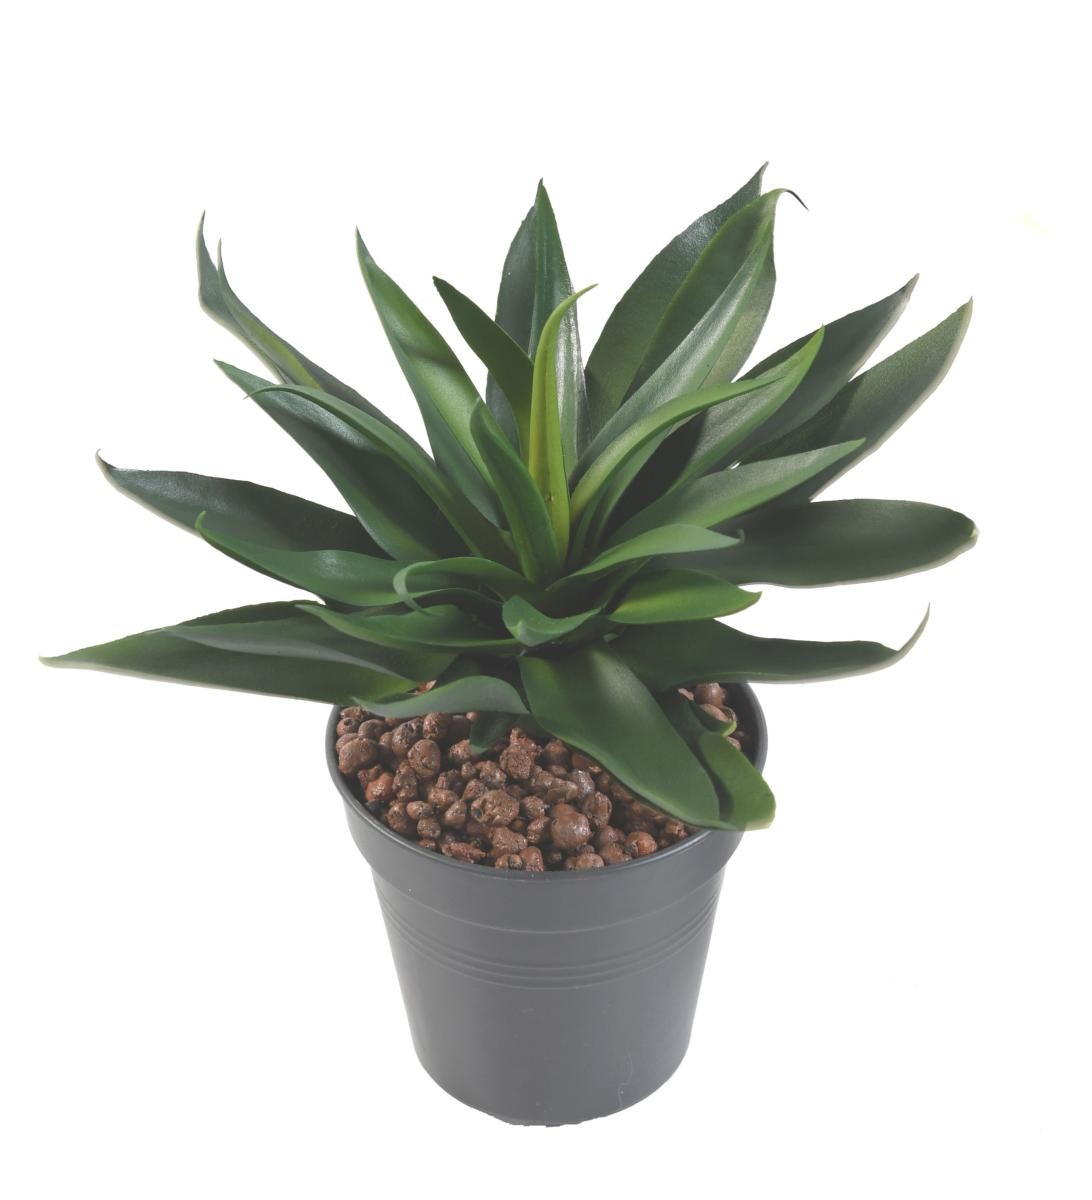 Plante artificielle agave 36 feuilles cactus artificiel for Cactus artificiel pour exterieur